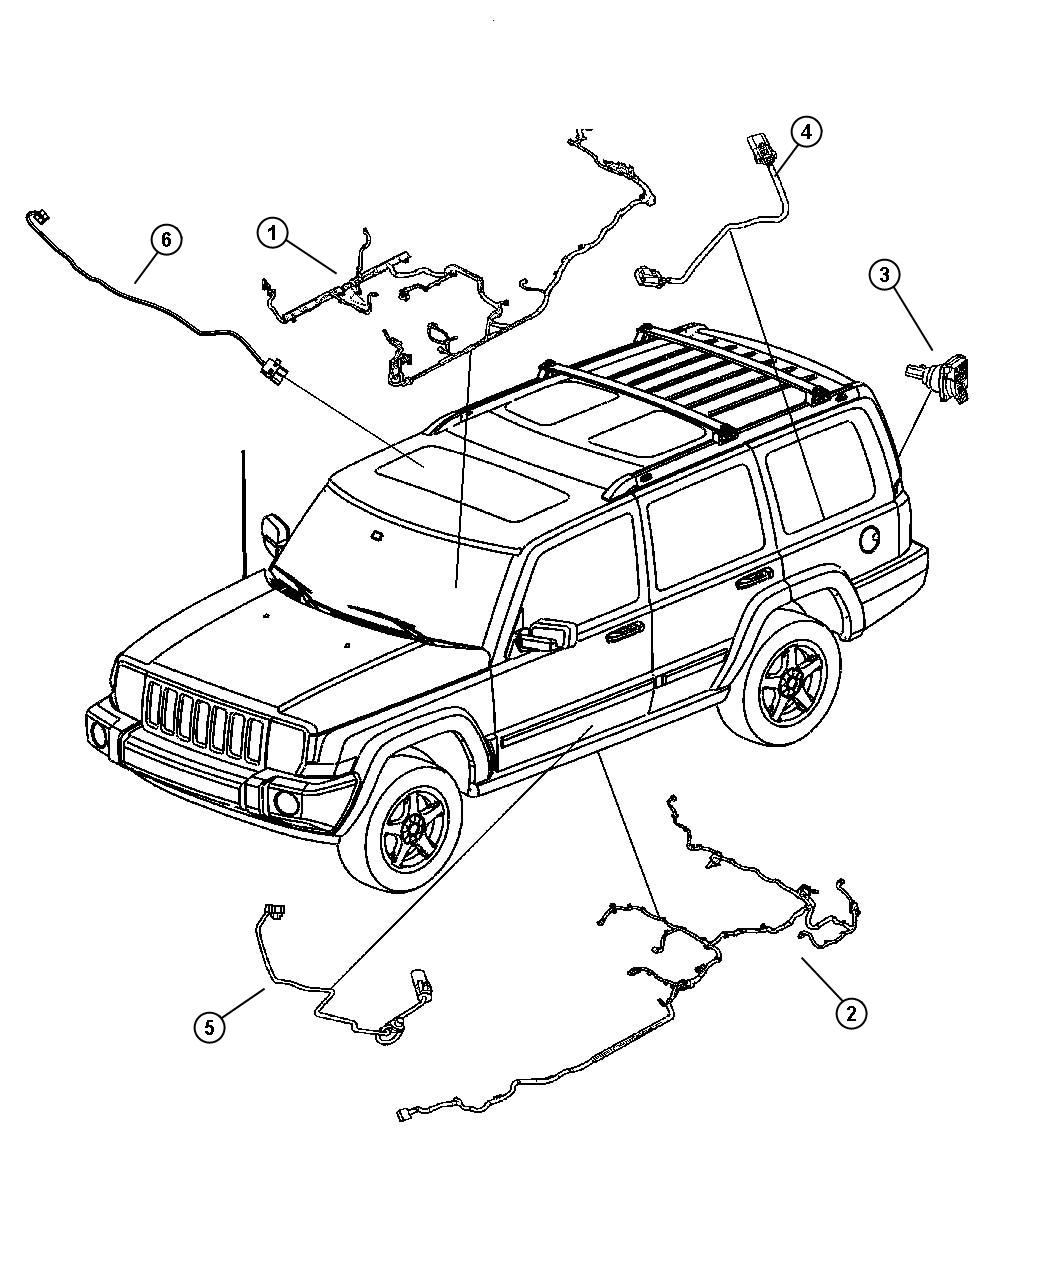 Service manual [Diagram Of How A 2007 Jeep Commander